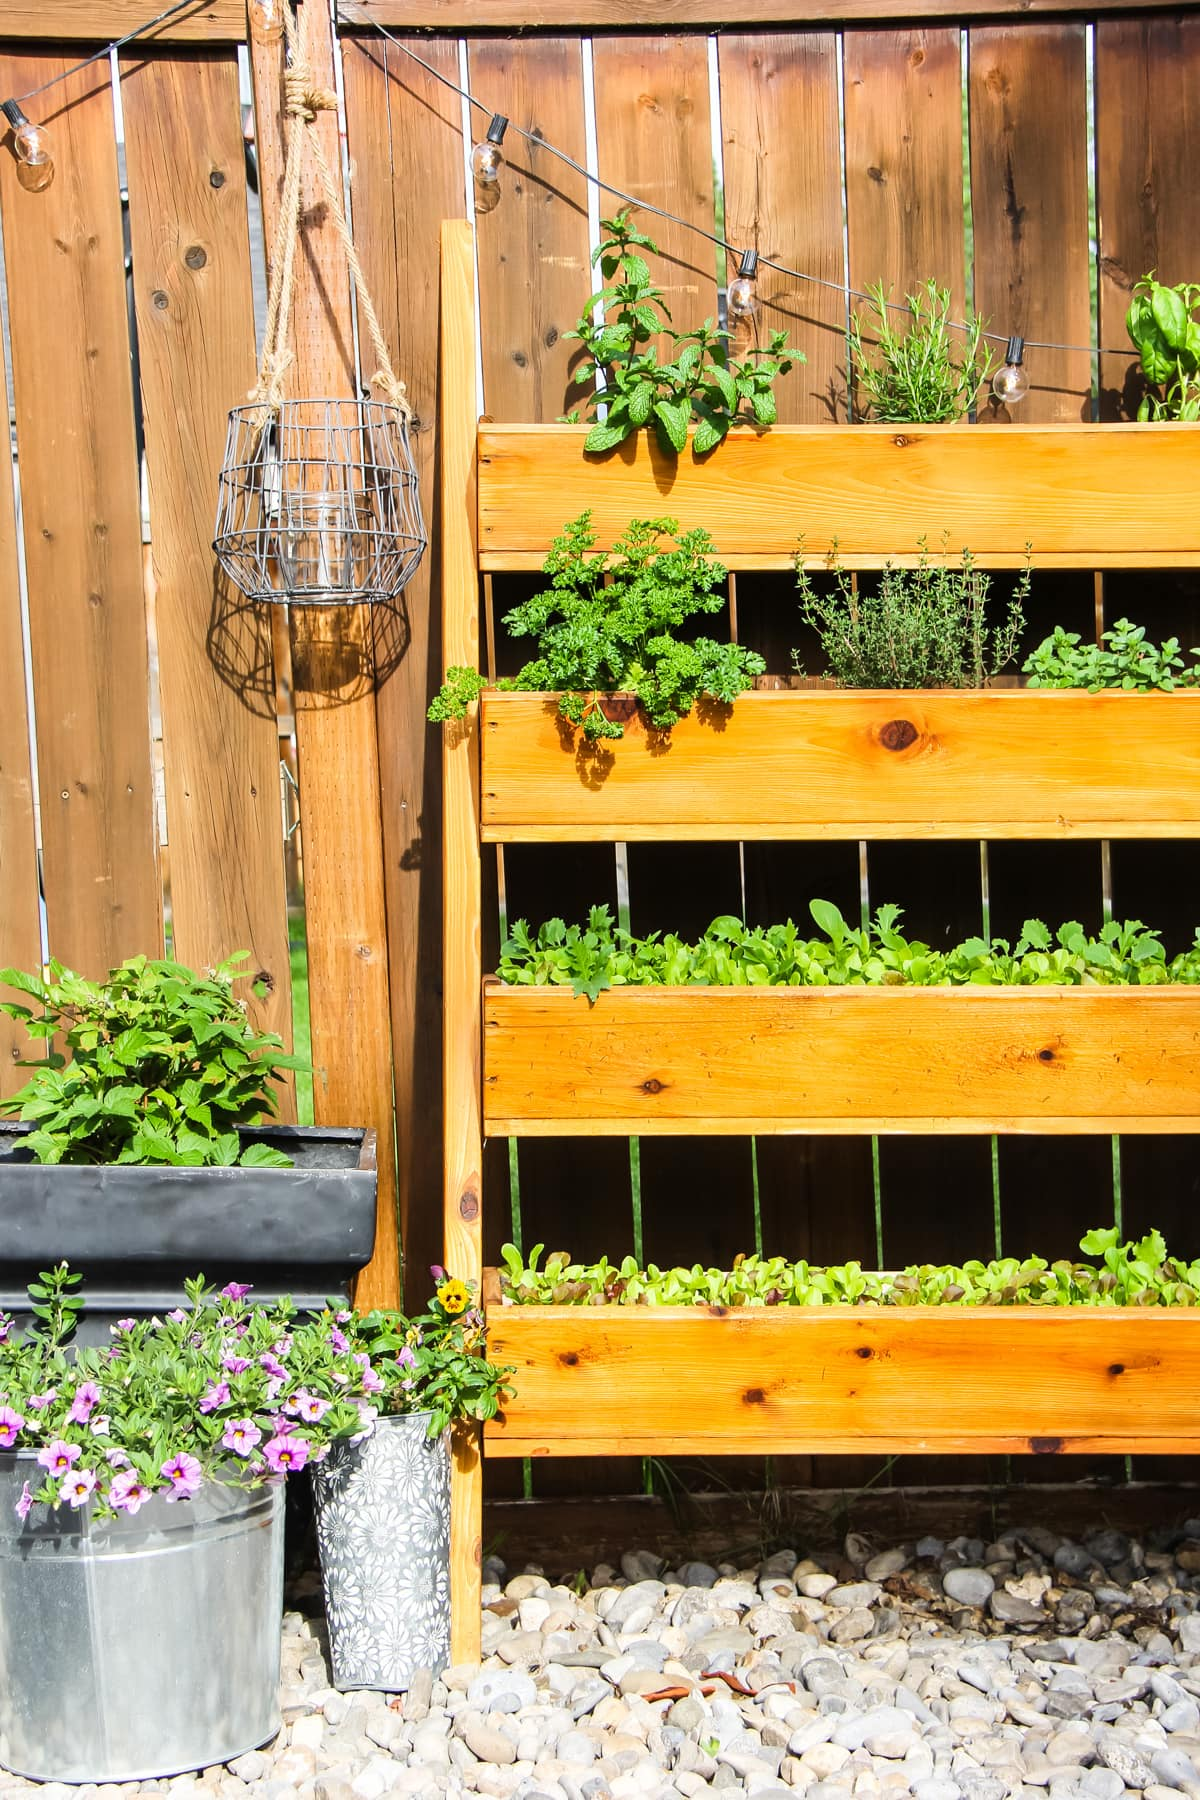 A Vertical Herb Garden full of herbs and lettuce.